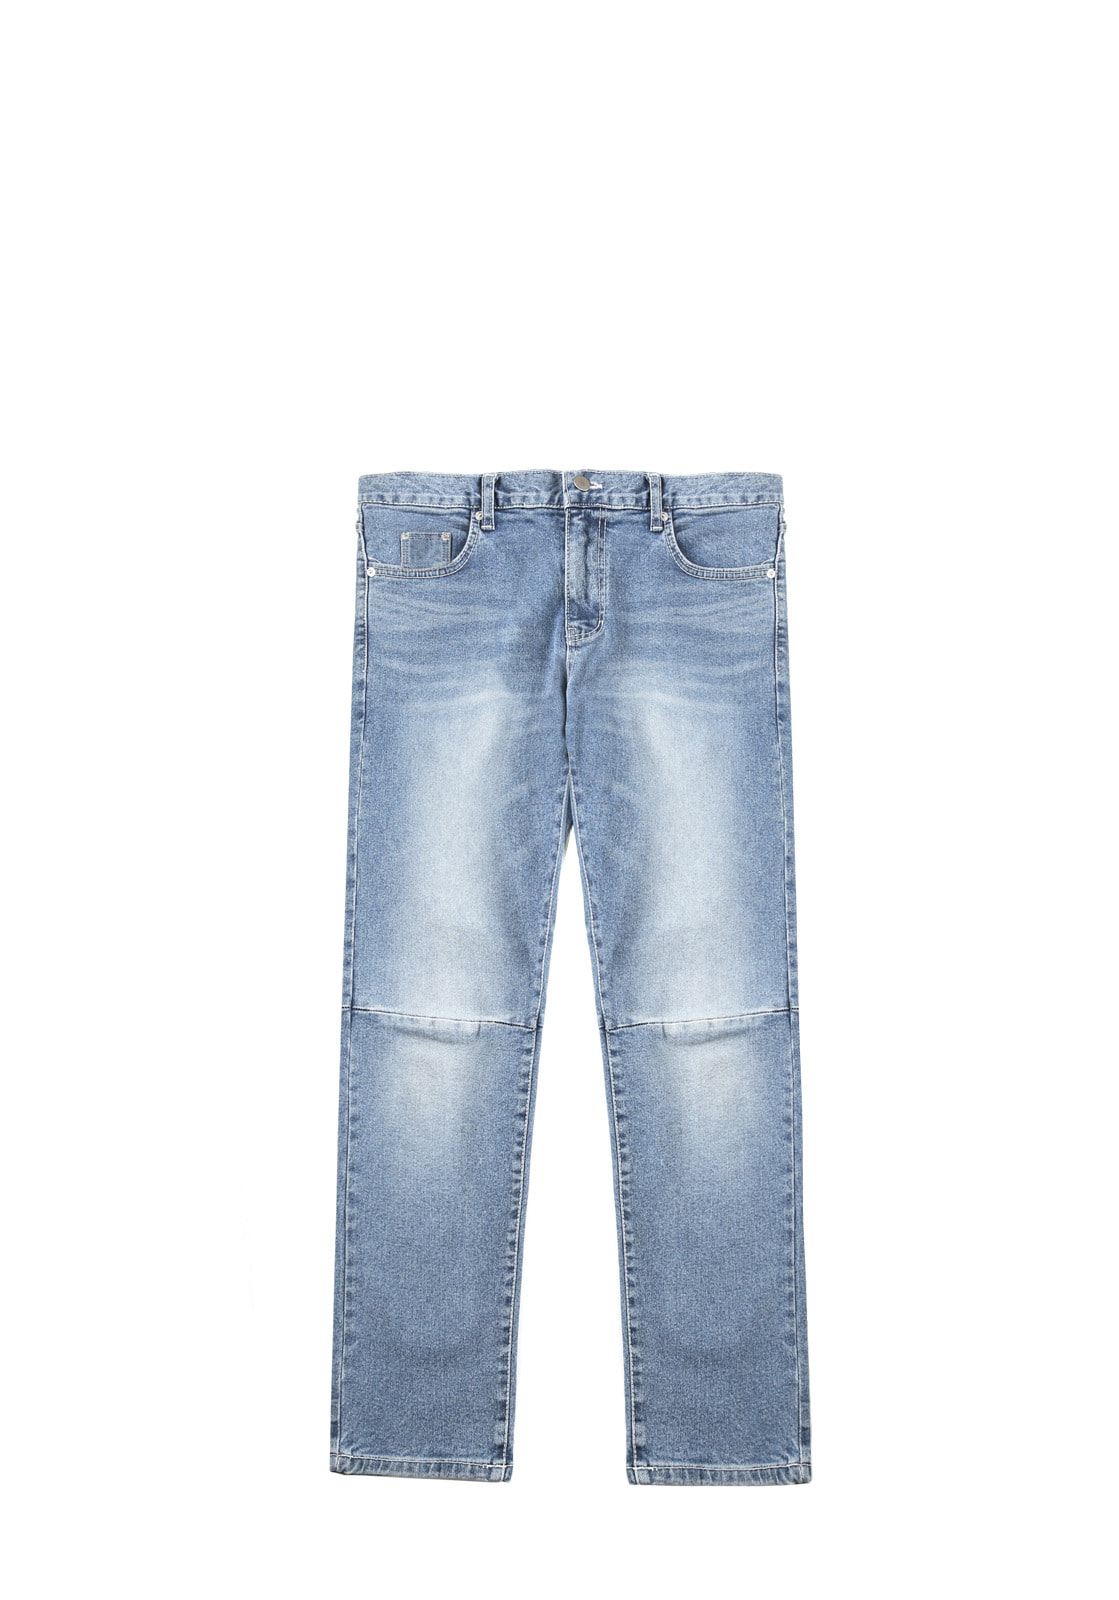 V243 INCISION SPAN DENIM PANTS  BLUE